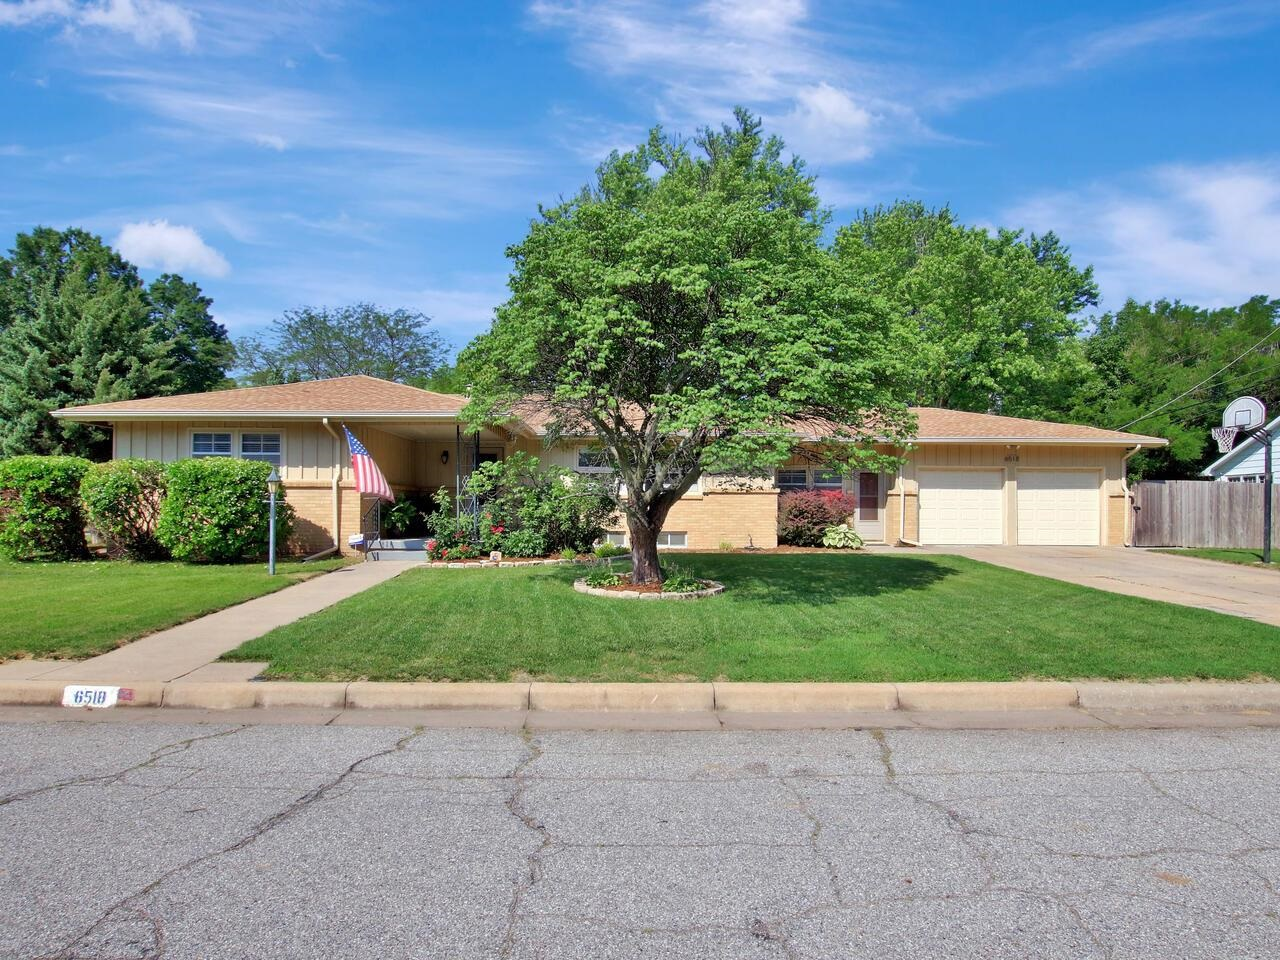 A Mid Century Lovers Dream! This stylish 3 bed, 2.5 bath MCM ranch is nothing short of perfection. B